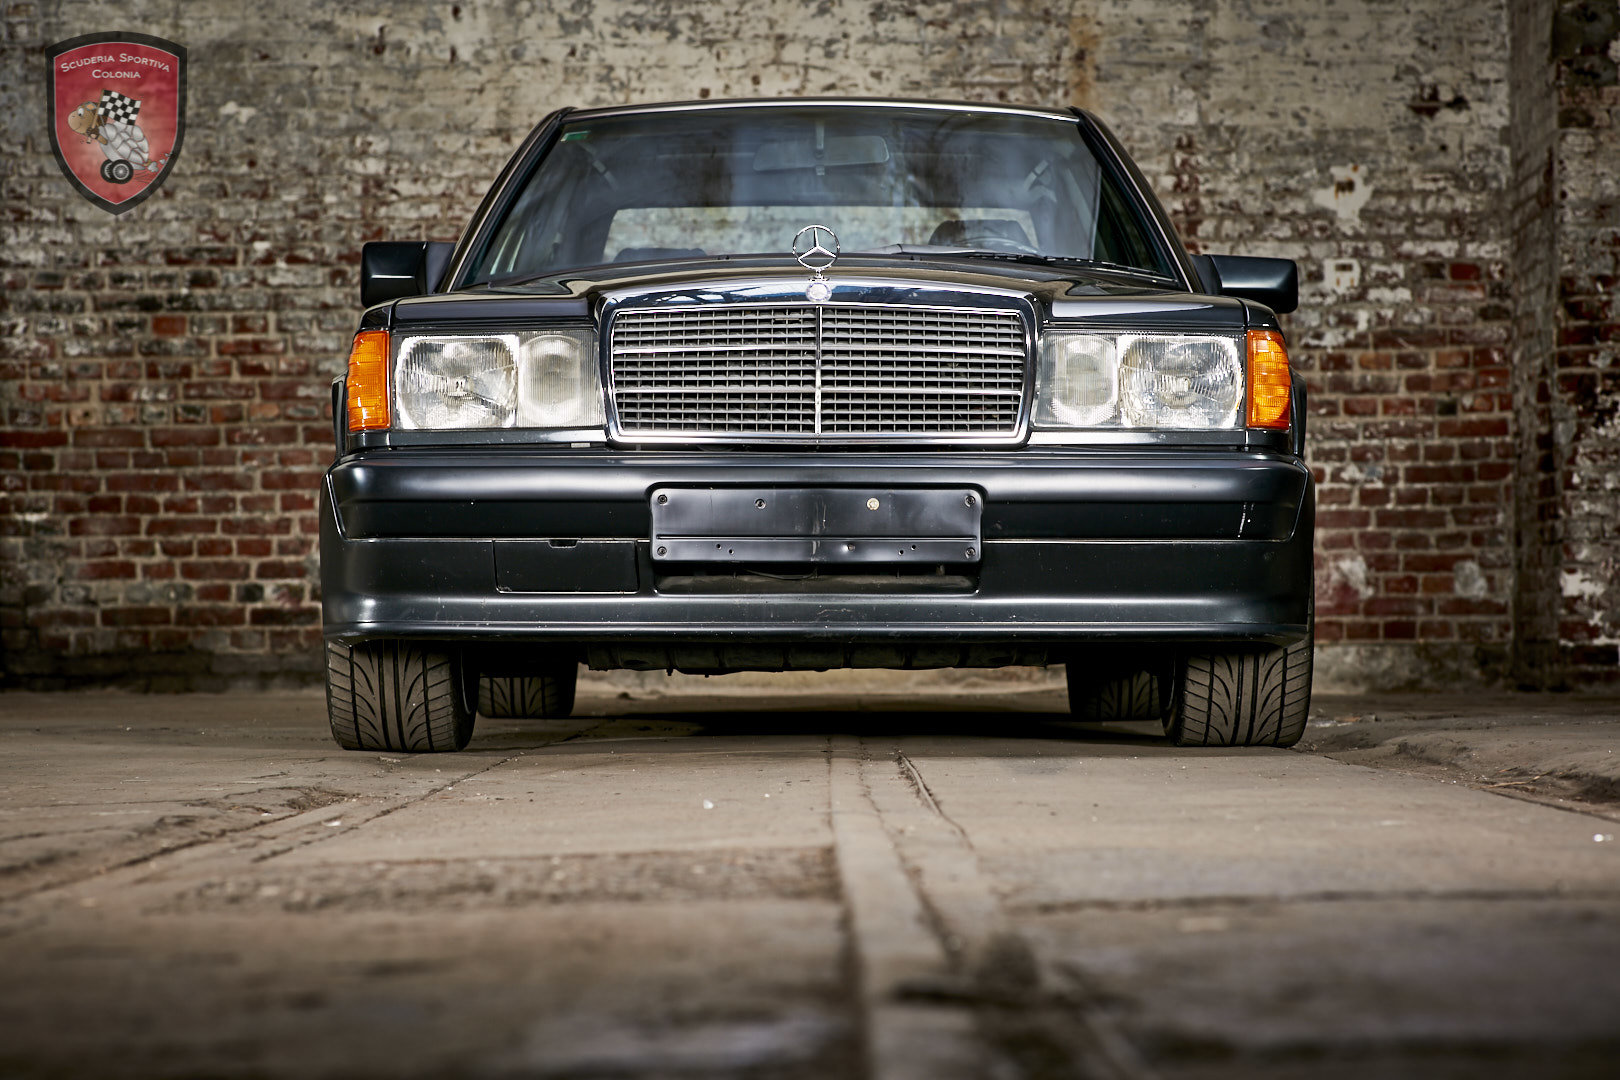 1990 Mercedes Benz 190 E  2.5   16 V For Sale (picture 1 of 12)